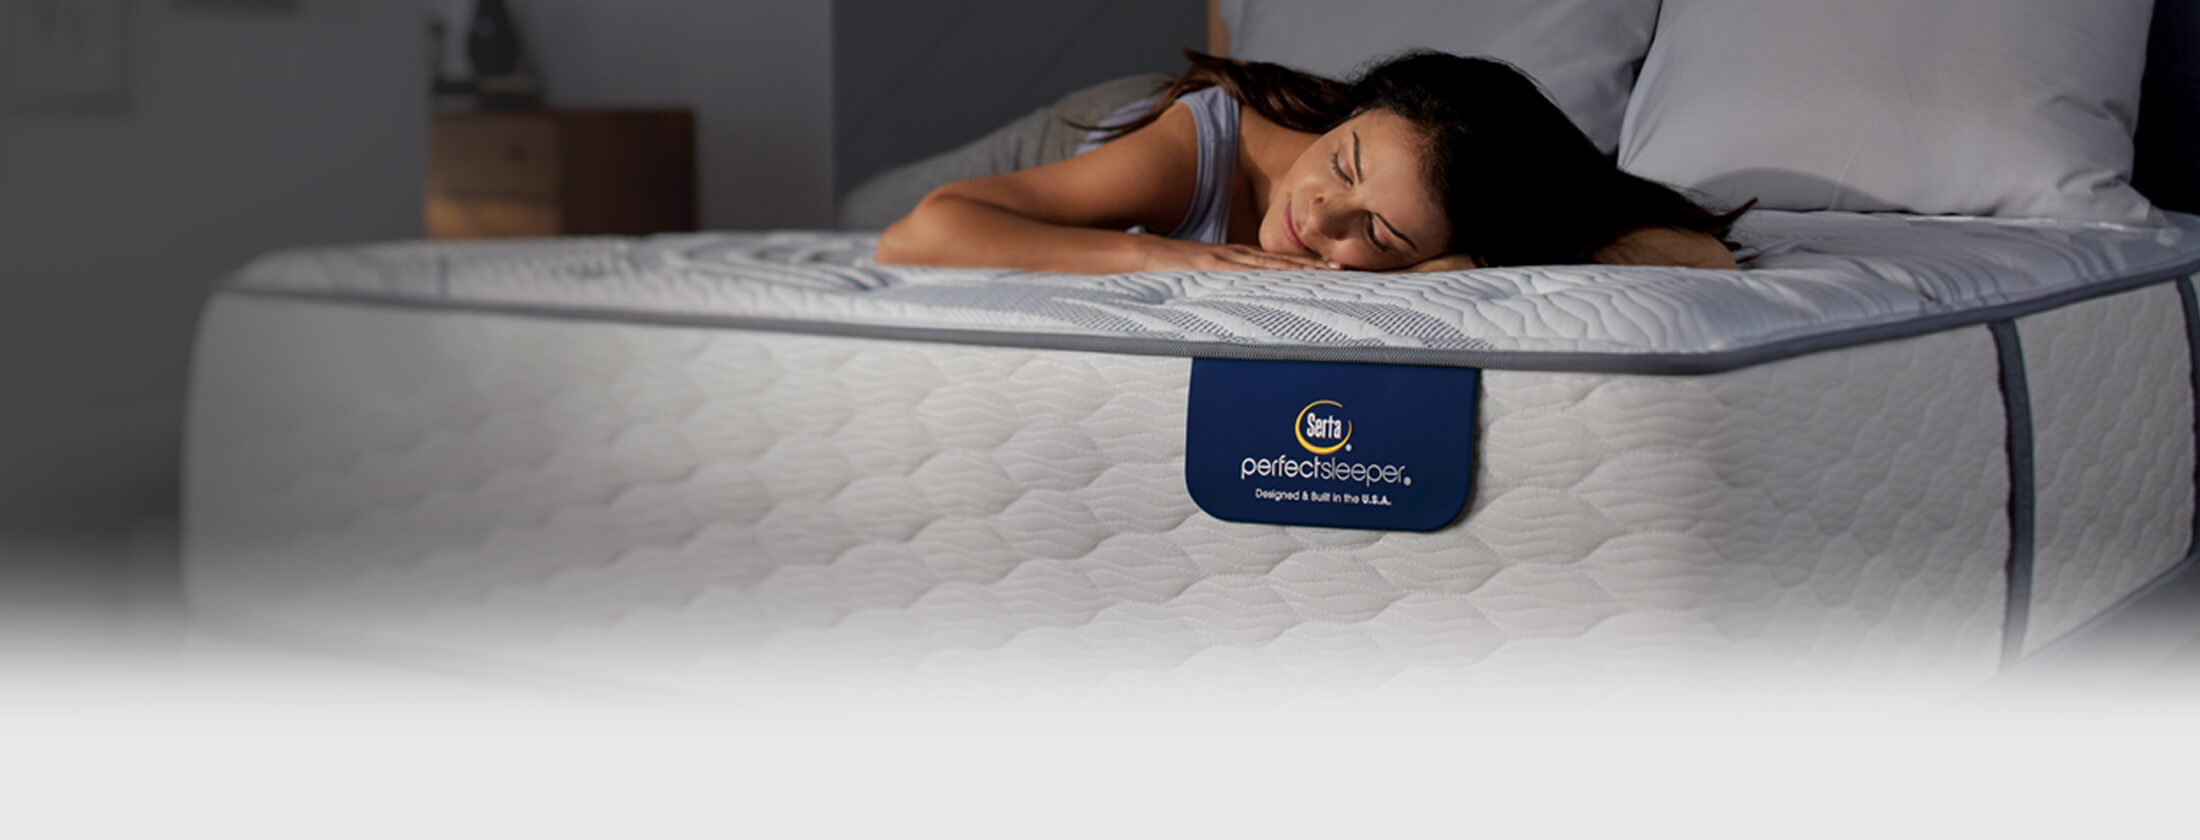 Full Size Mattress Dimensions | Serta.com